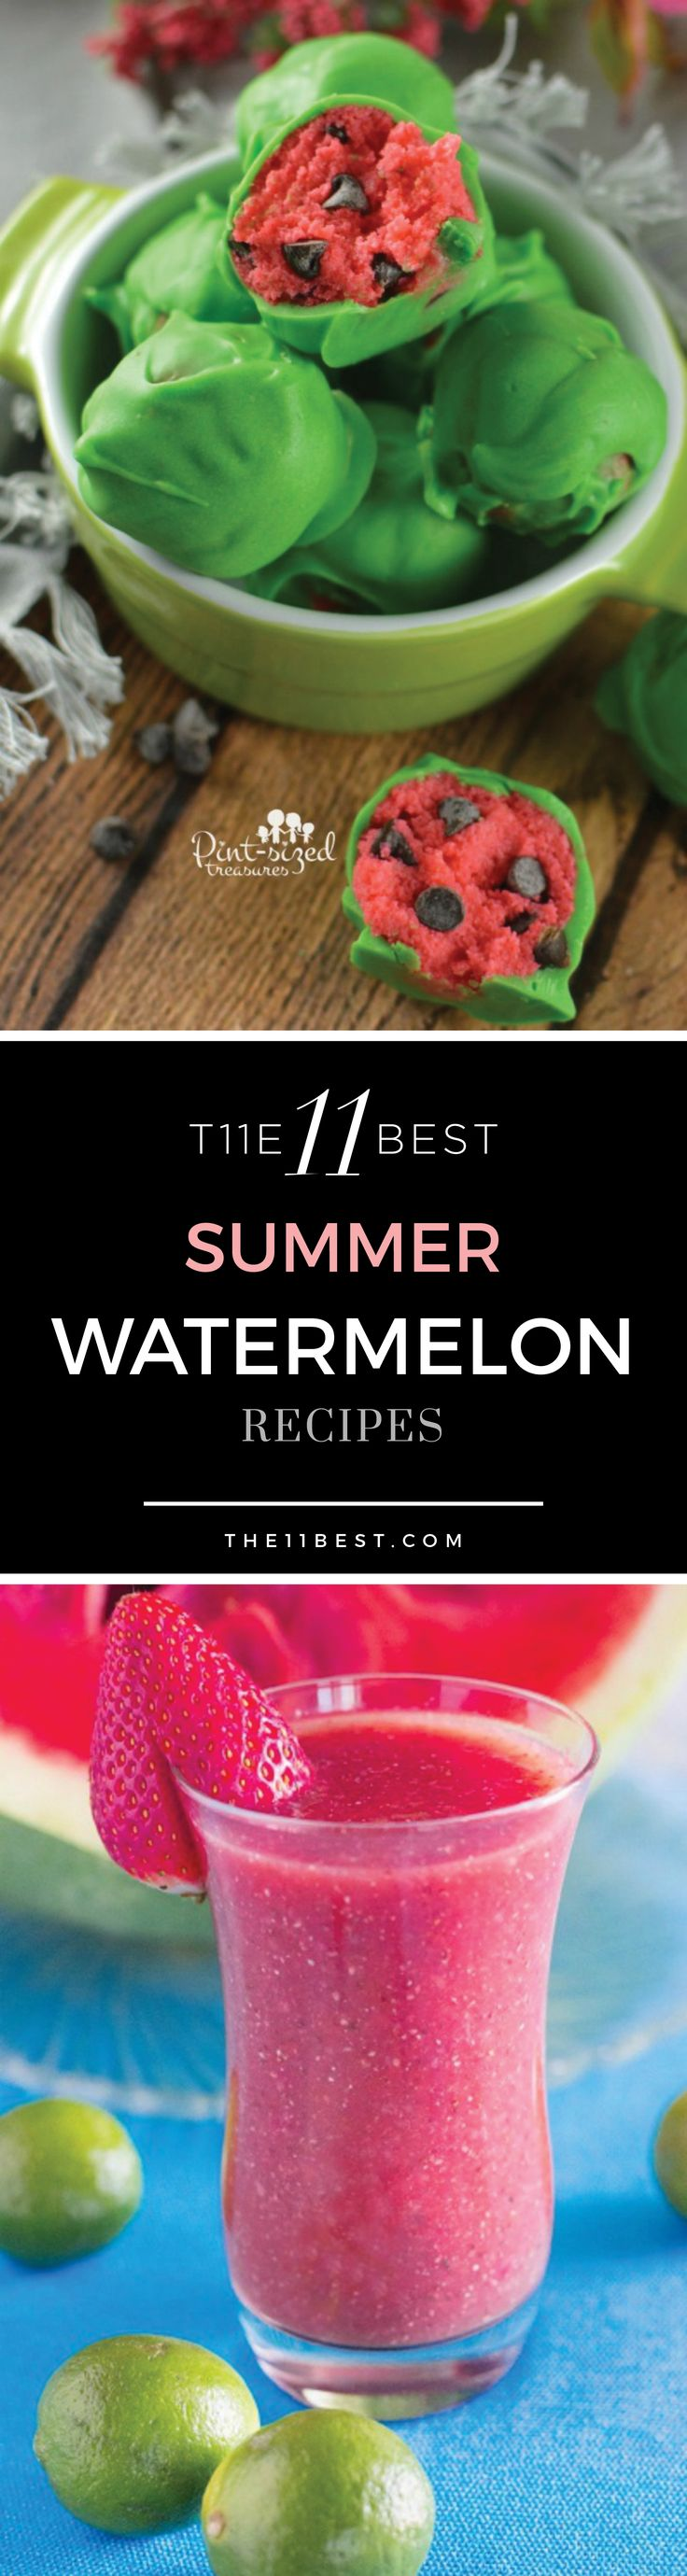 The 11 Best DIY Summer Watermelon Recipes